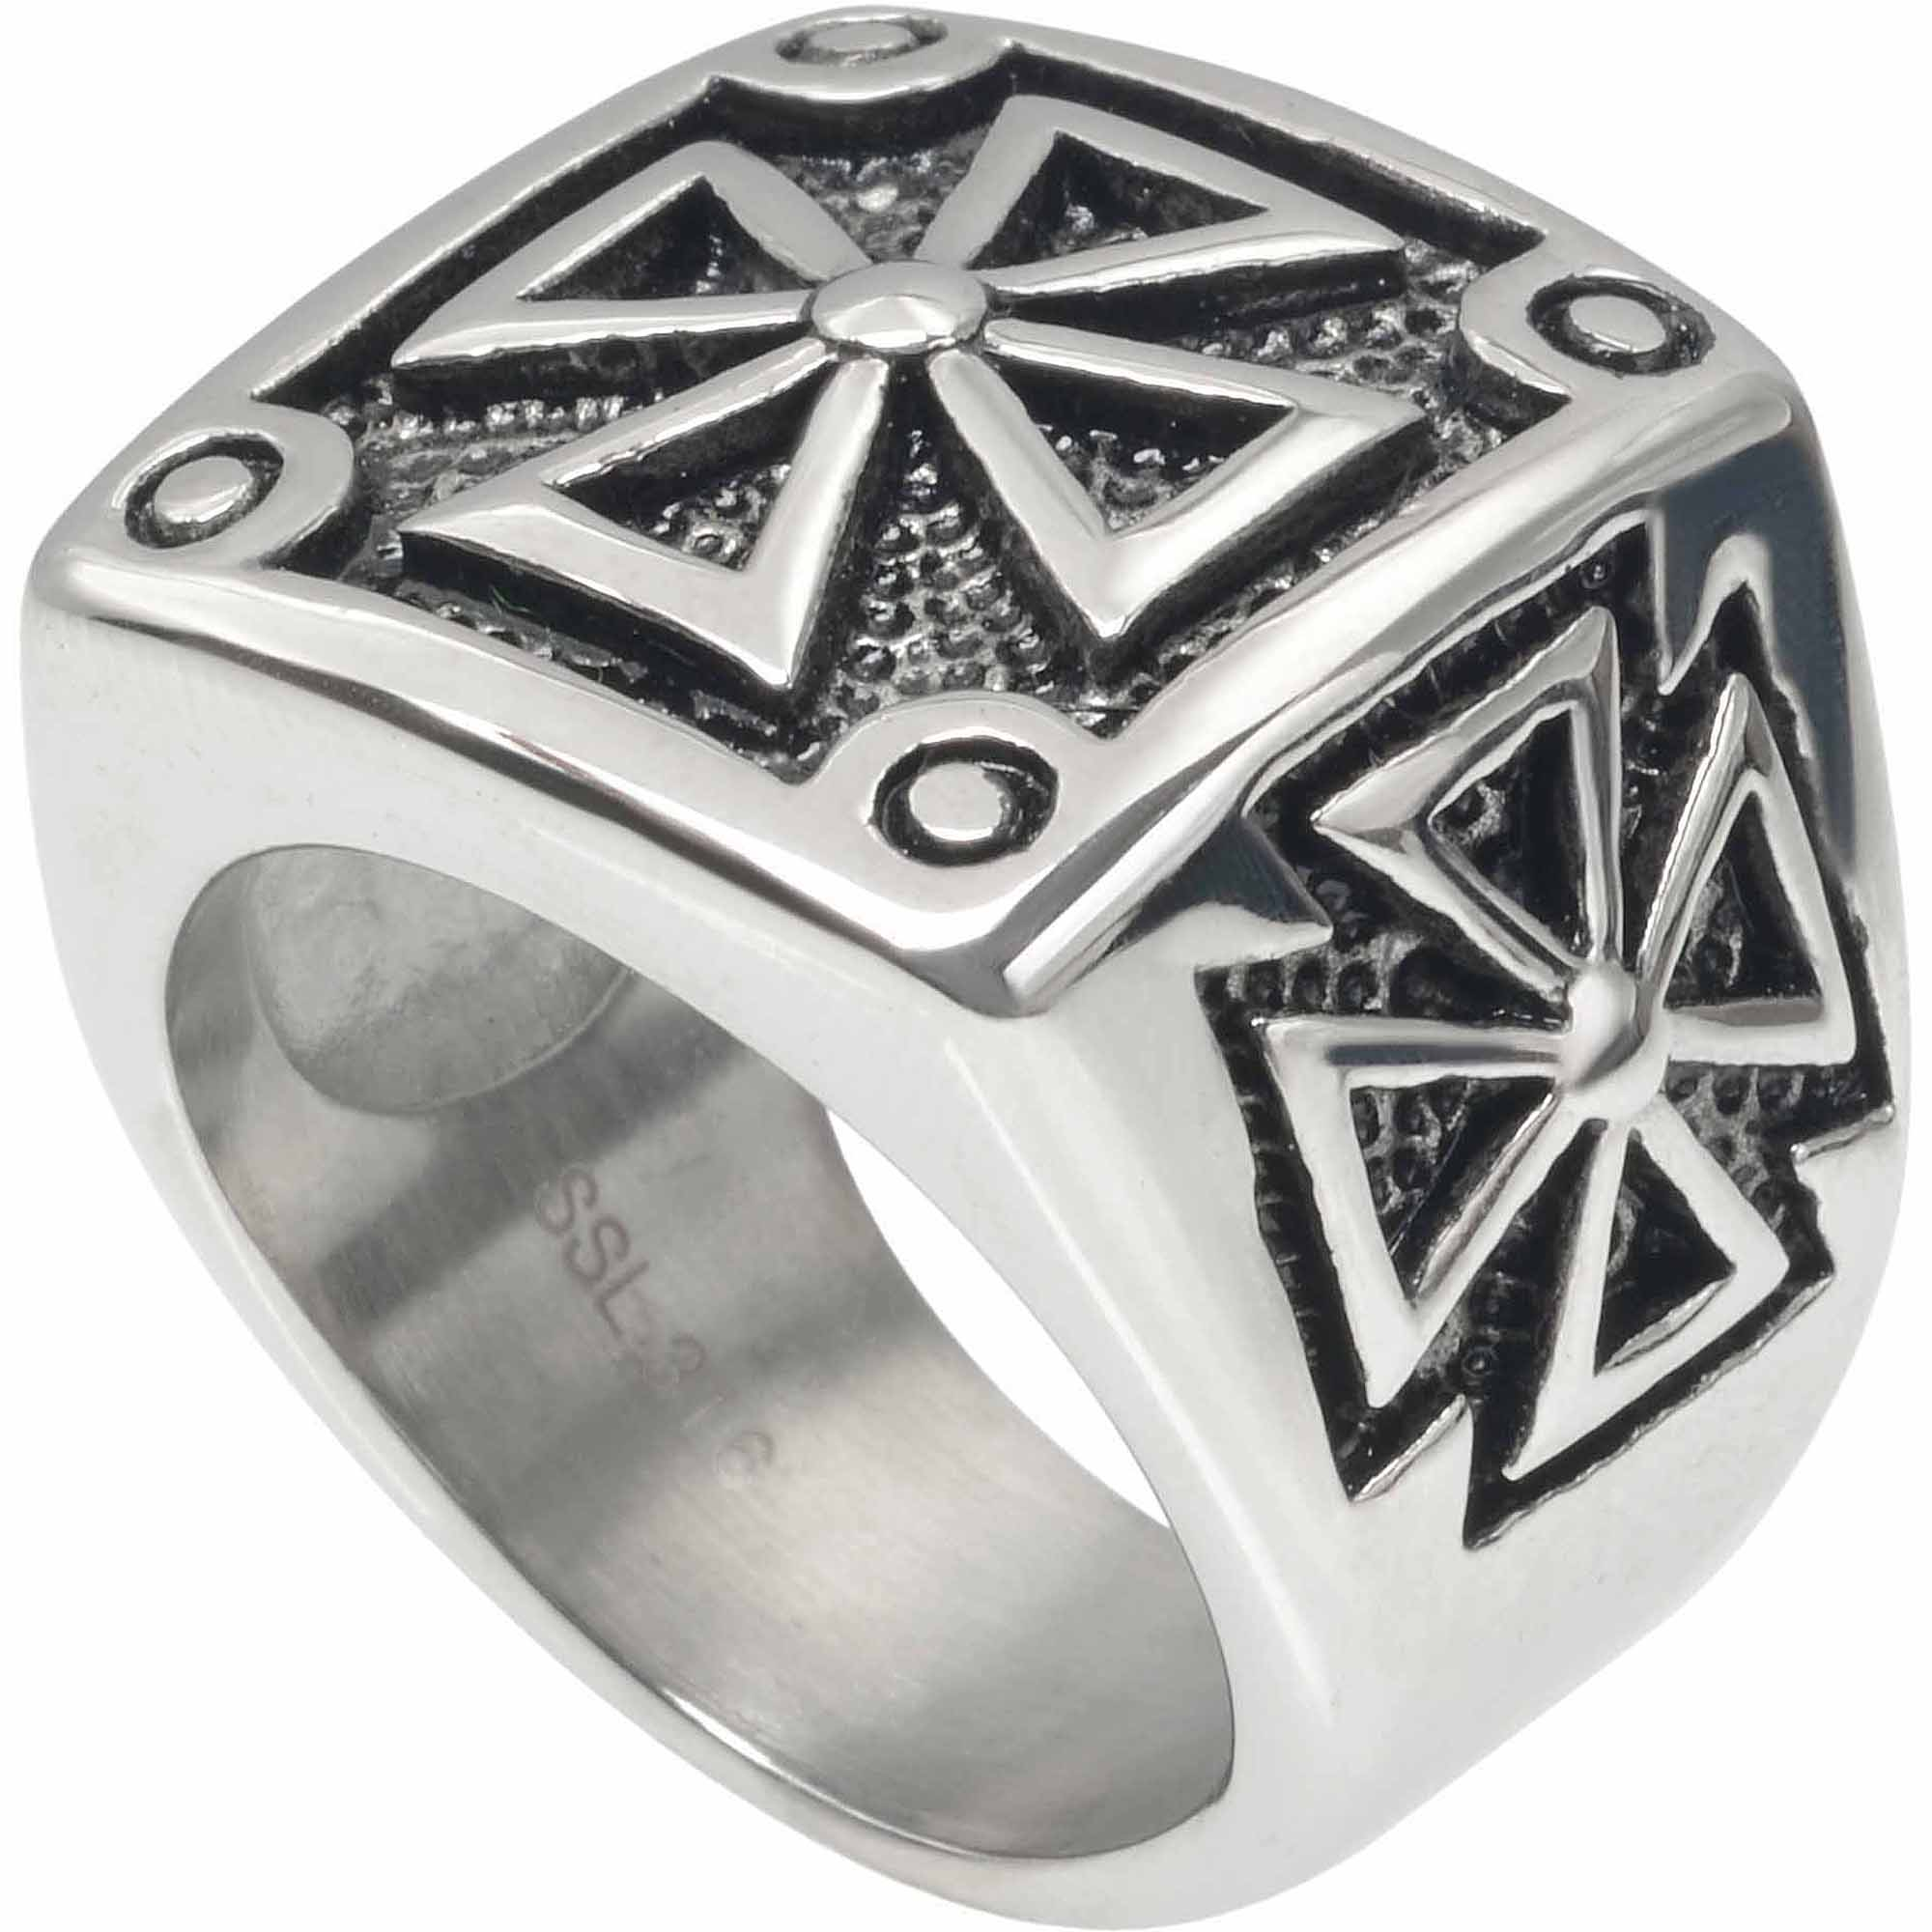 Daxx Men's Stainless Steel Iron Cross Fashion Ring